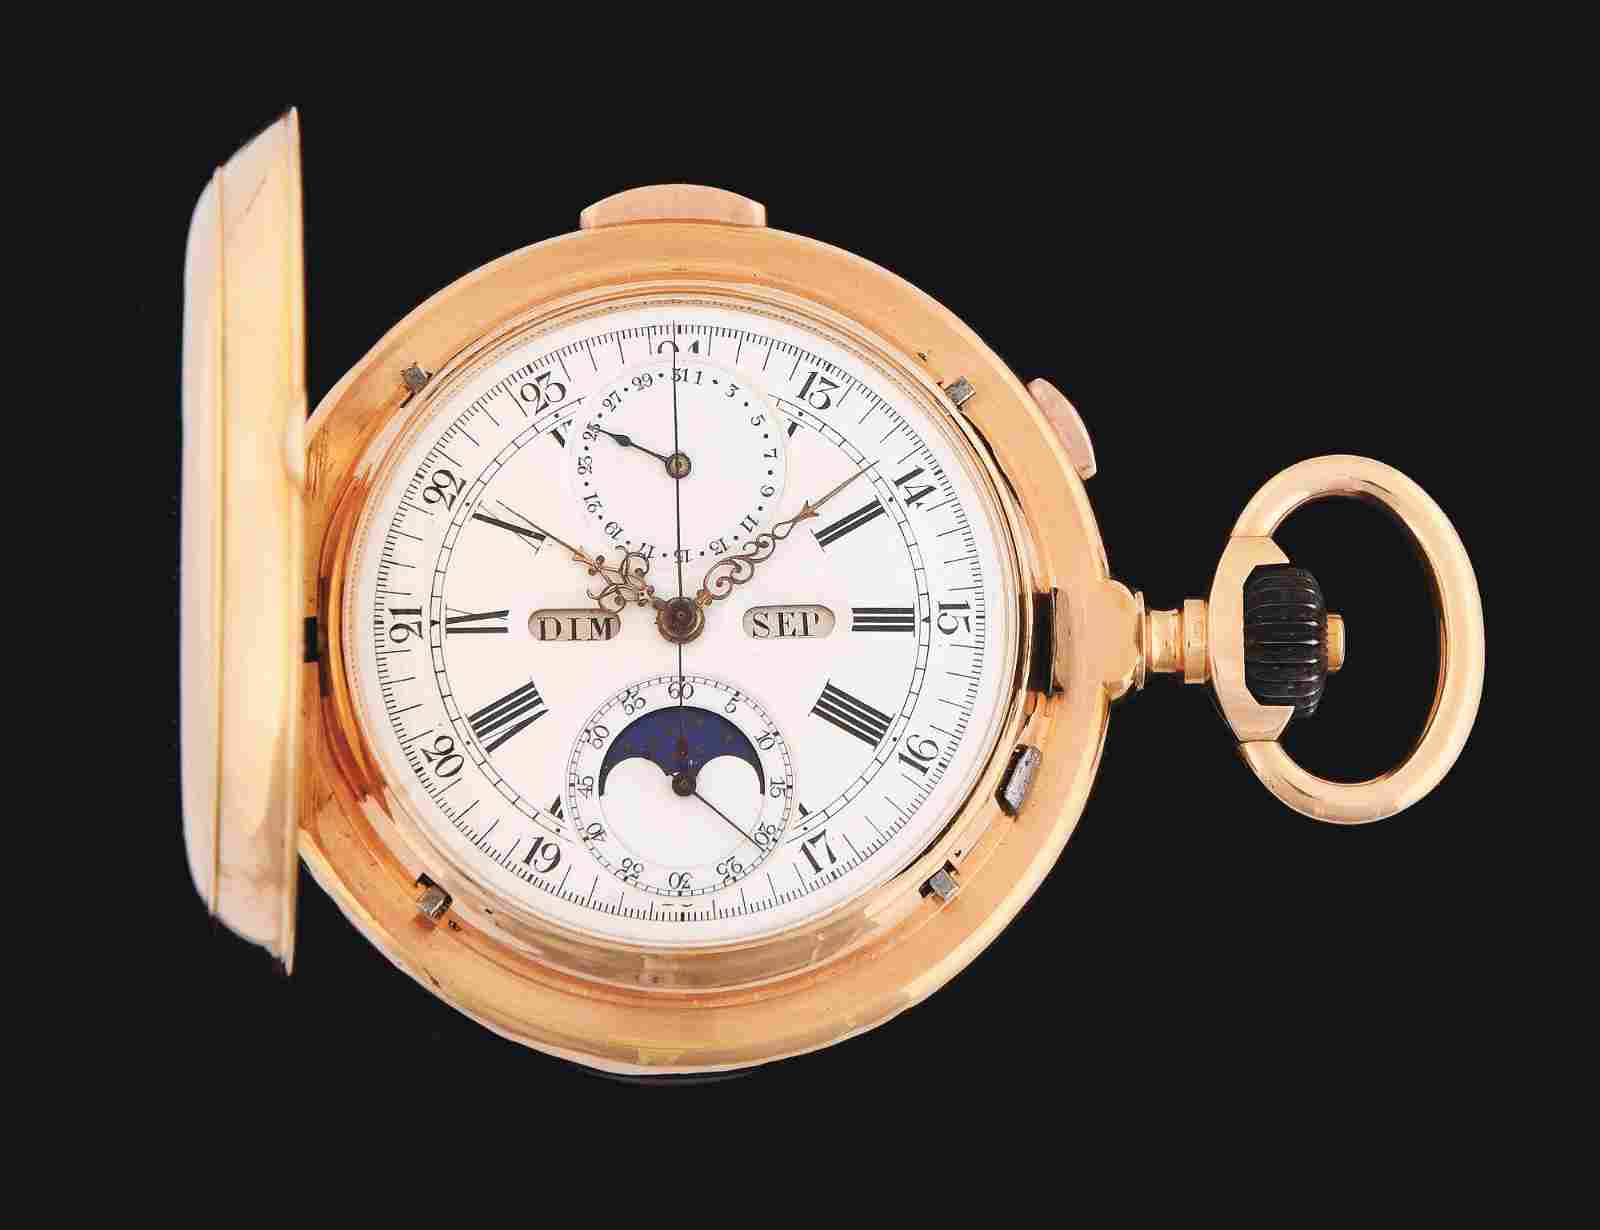 18K PINK GOLD LE PHARE GRAND COMPLICATIONS MINUTE